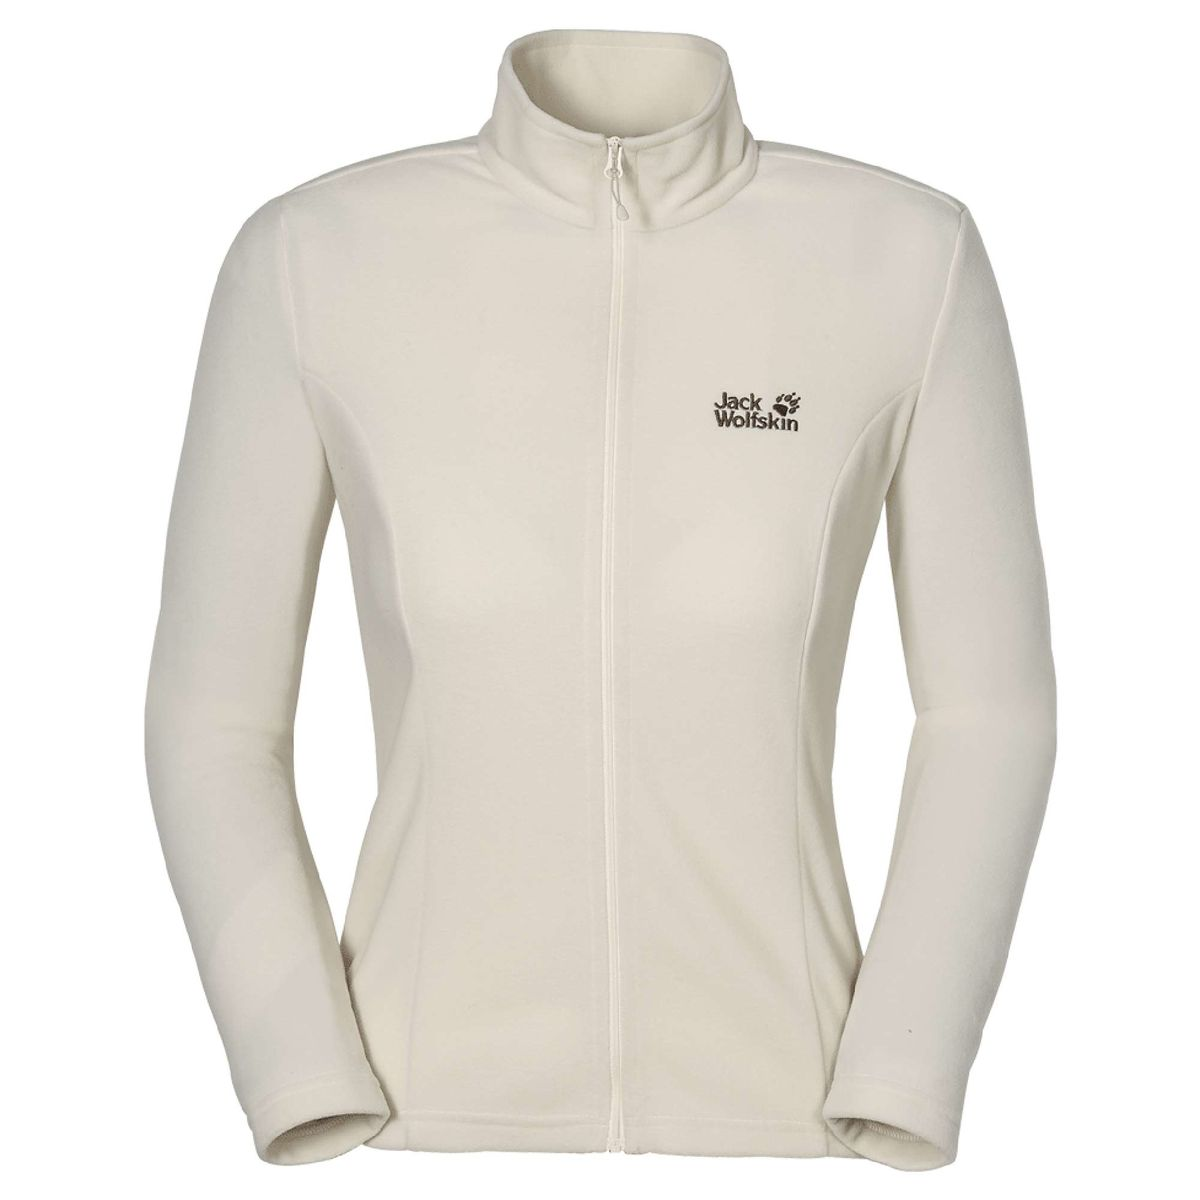 GECKO women's fleece jacket